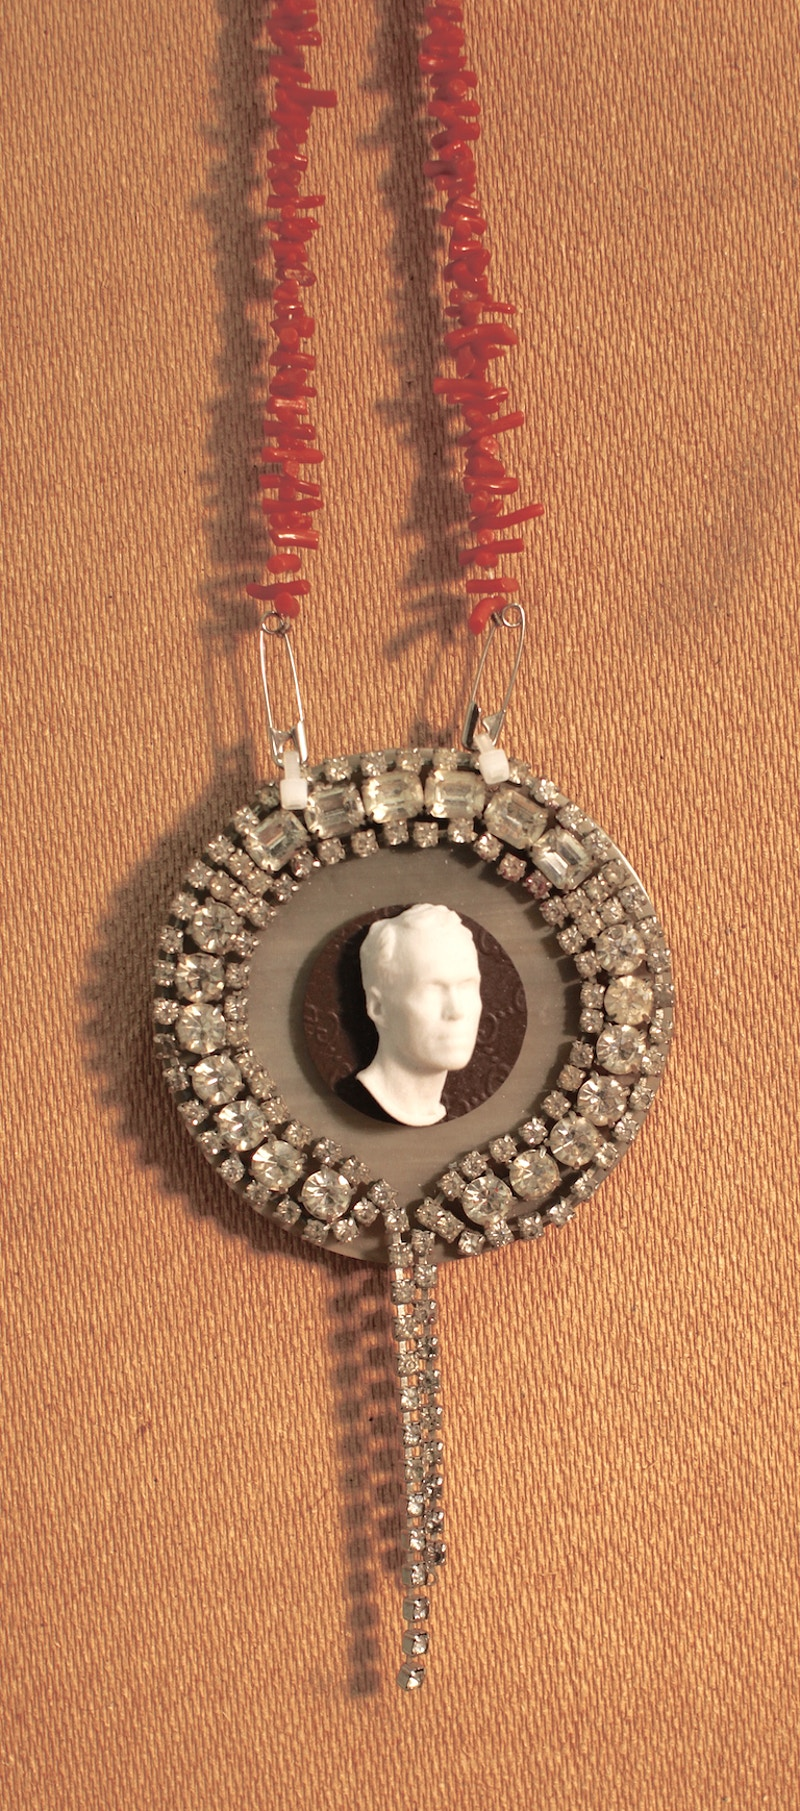 BAS RELIEF NECKLACE, 2015 - John Y. Wind | Artist